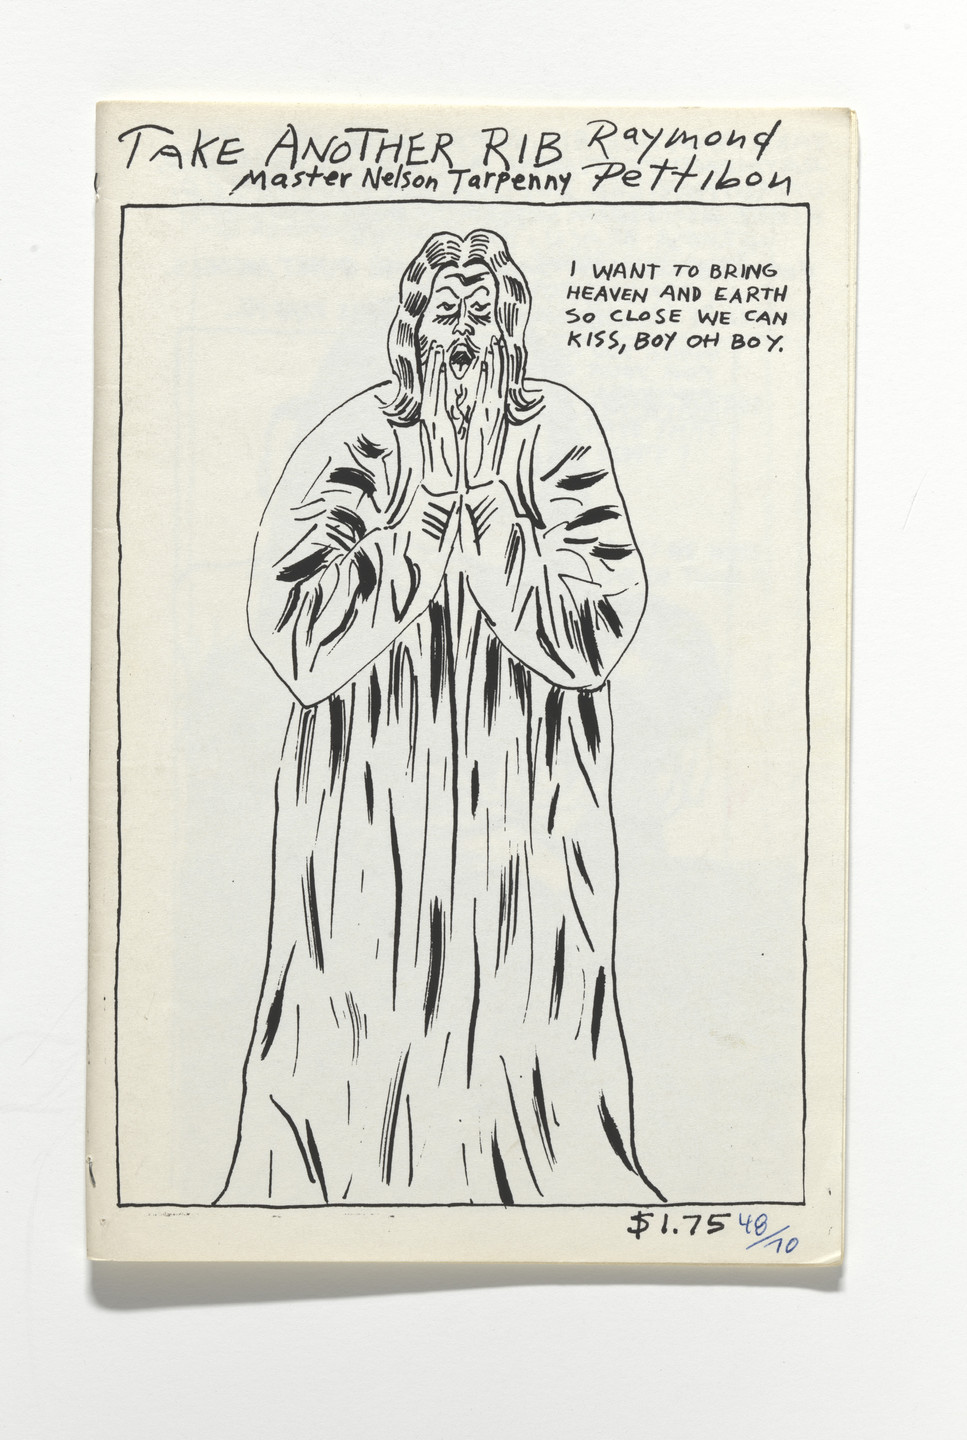 Raymond Pettibon, Nelson Tarpenny. Taken Another Rib. 1989